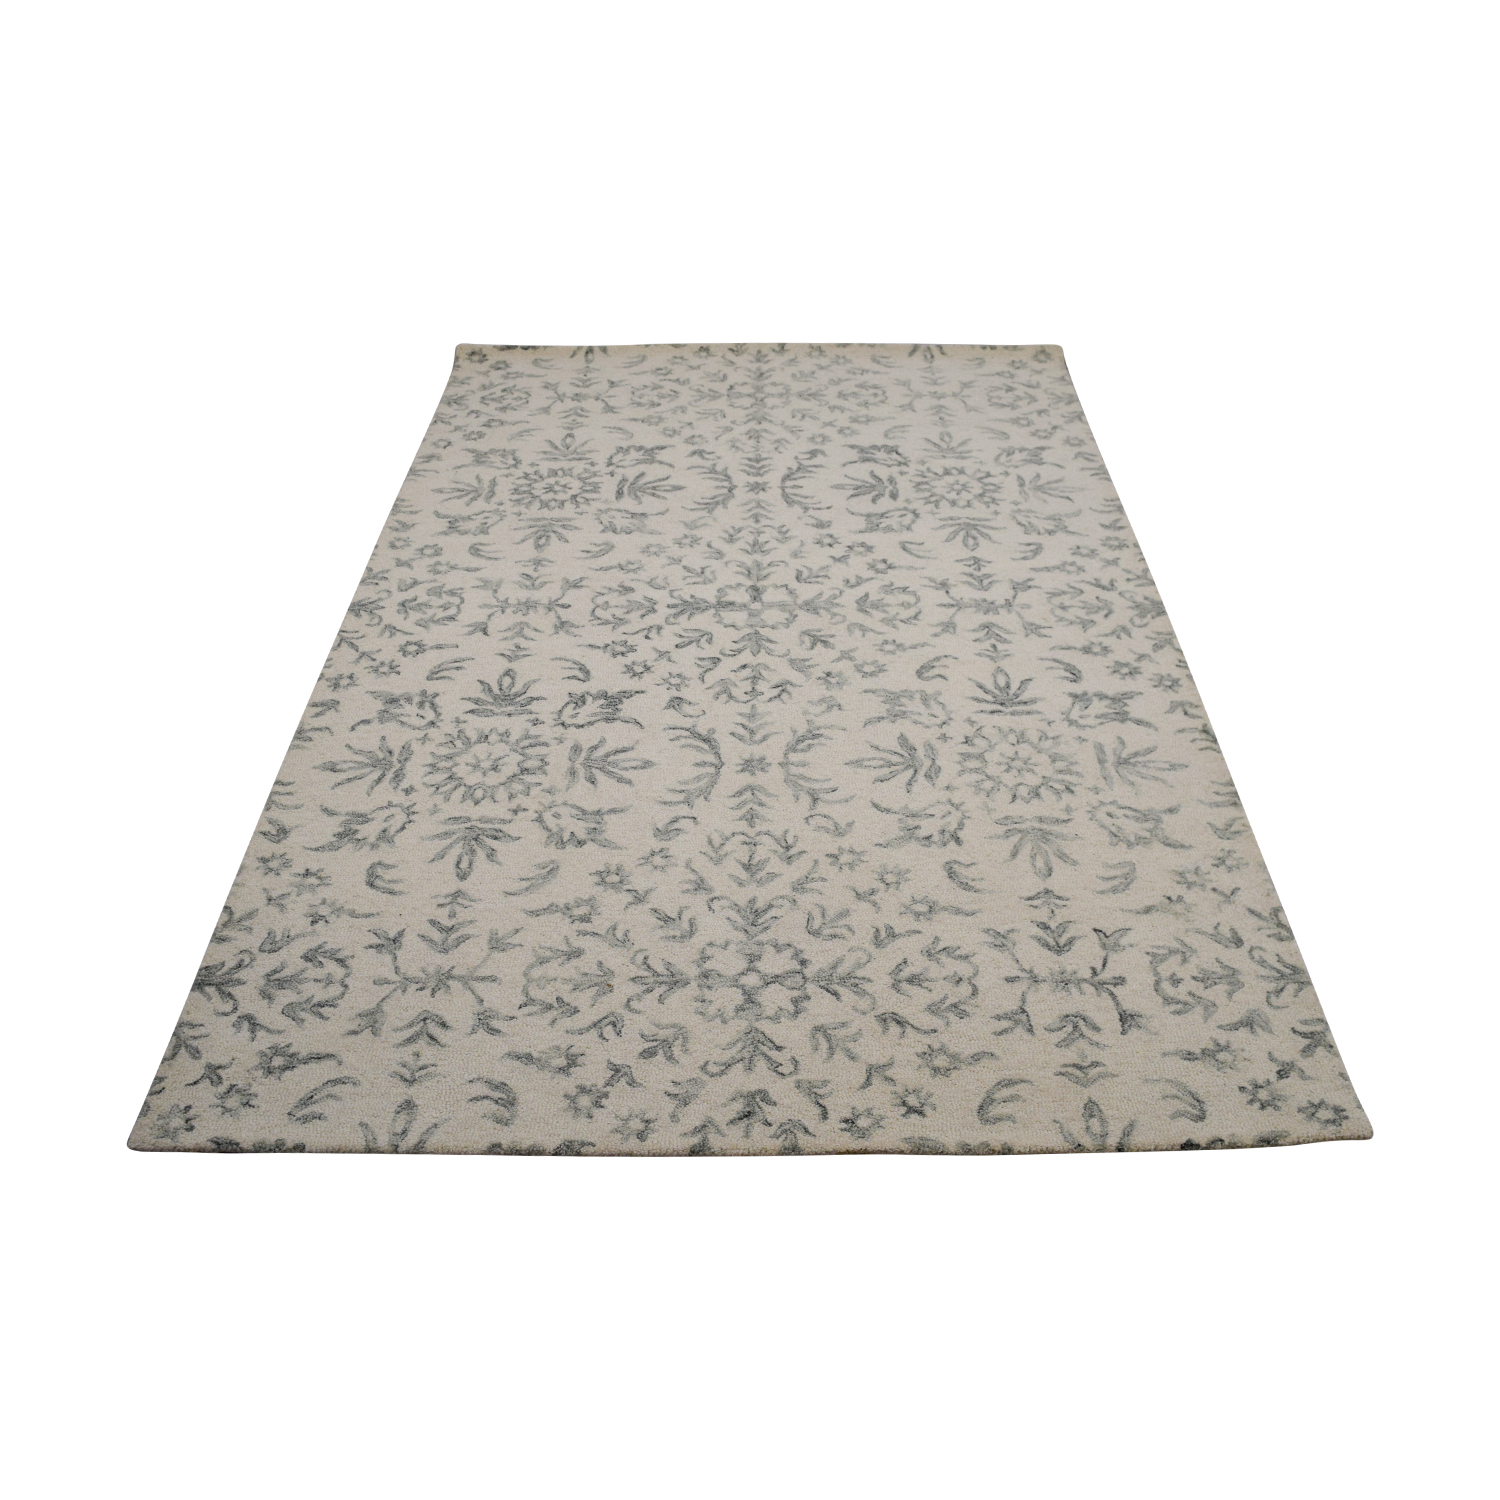 Obeetee Obeetee White and Light Gray Rug discount